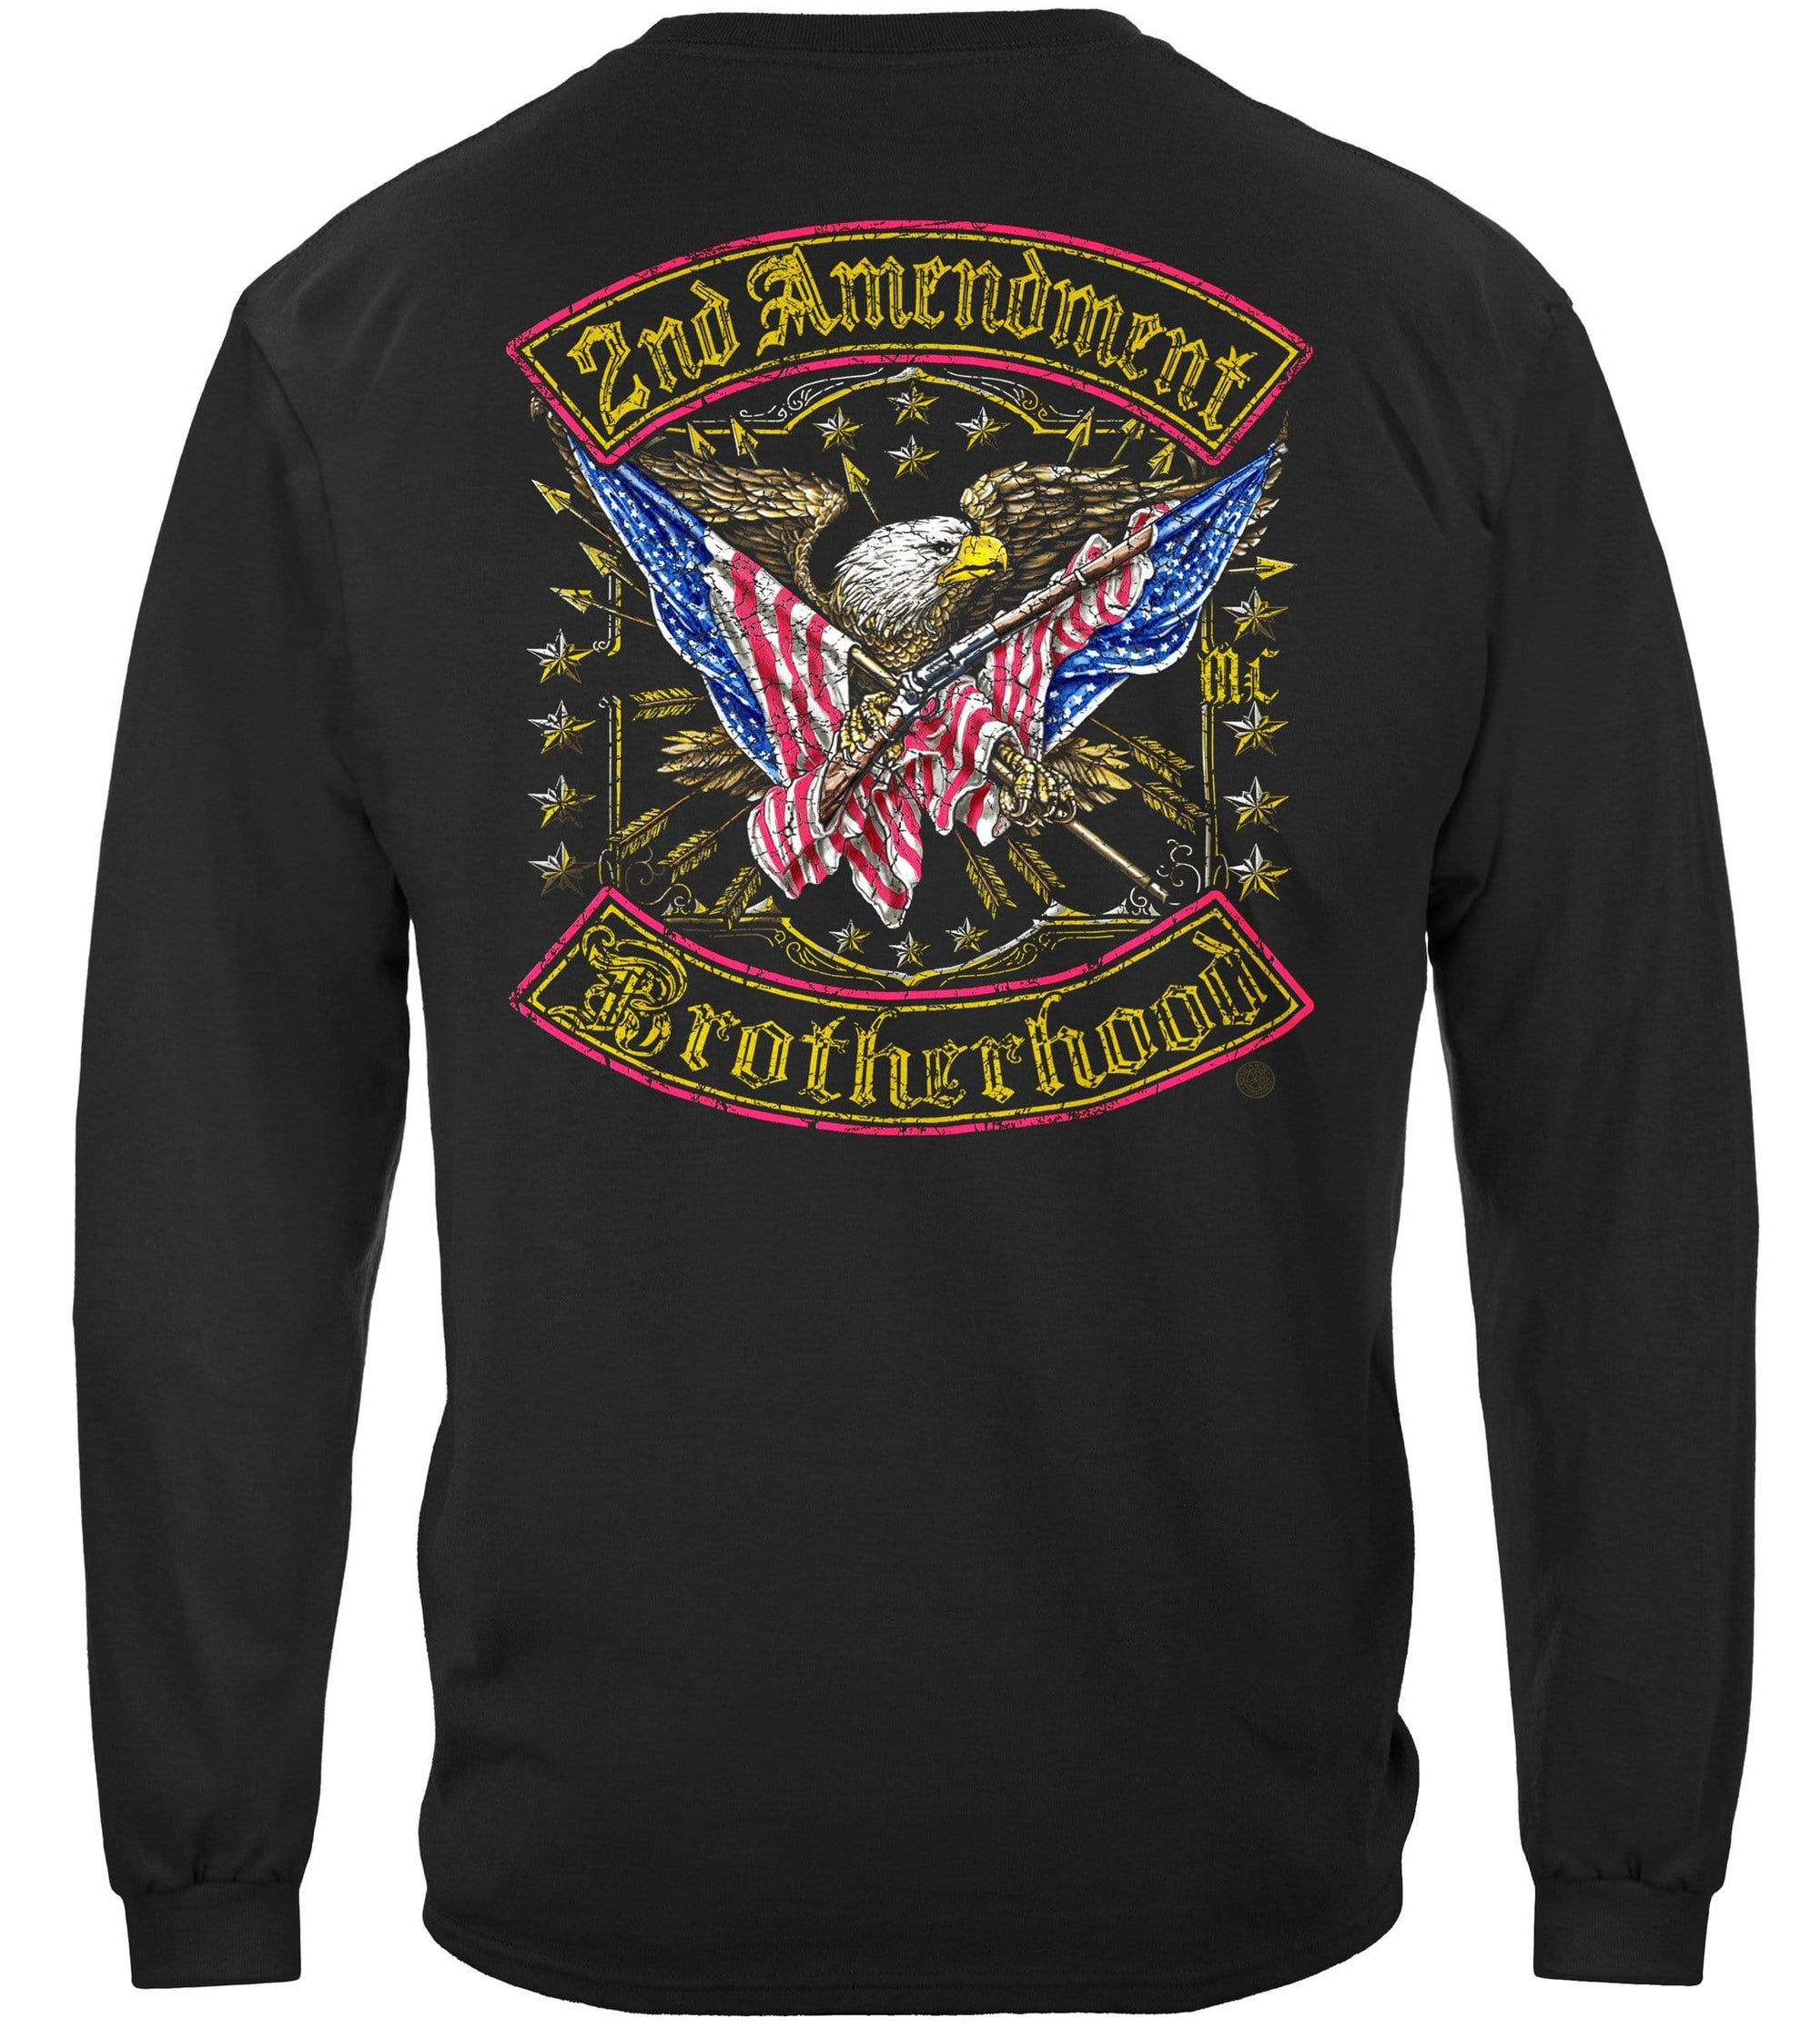 2nd Amendment Brotherhood Long Sleeve